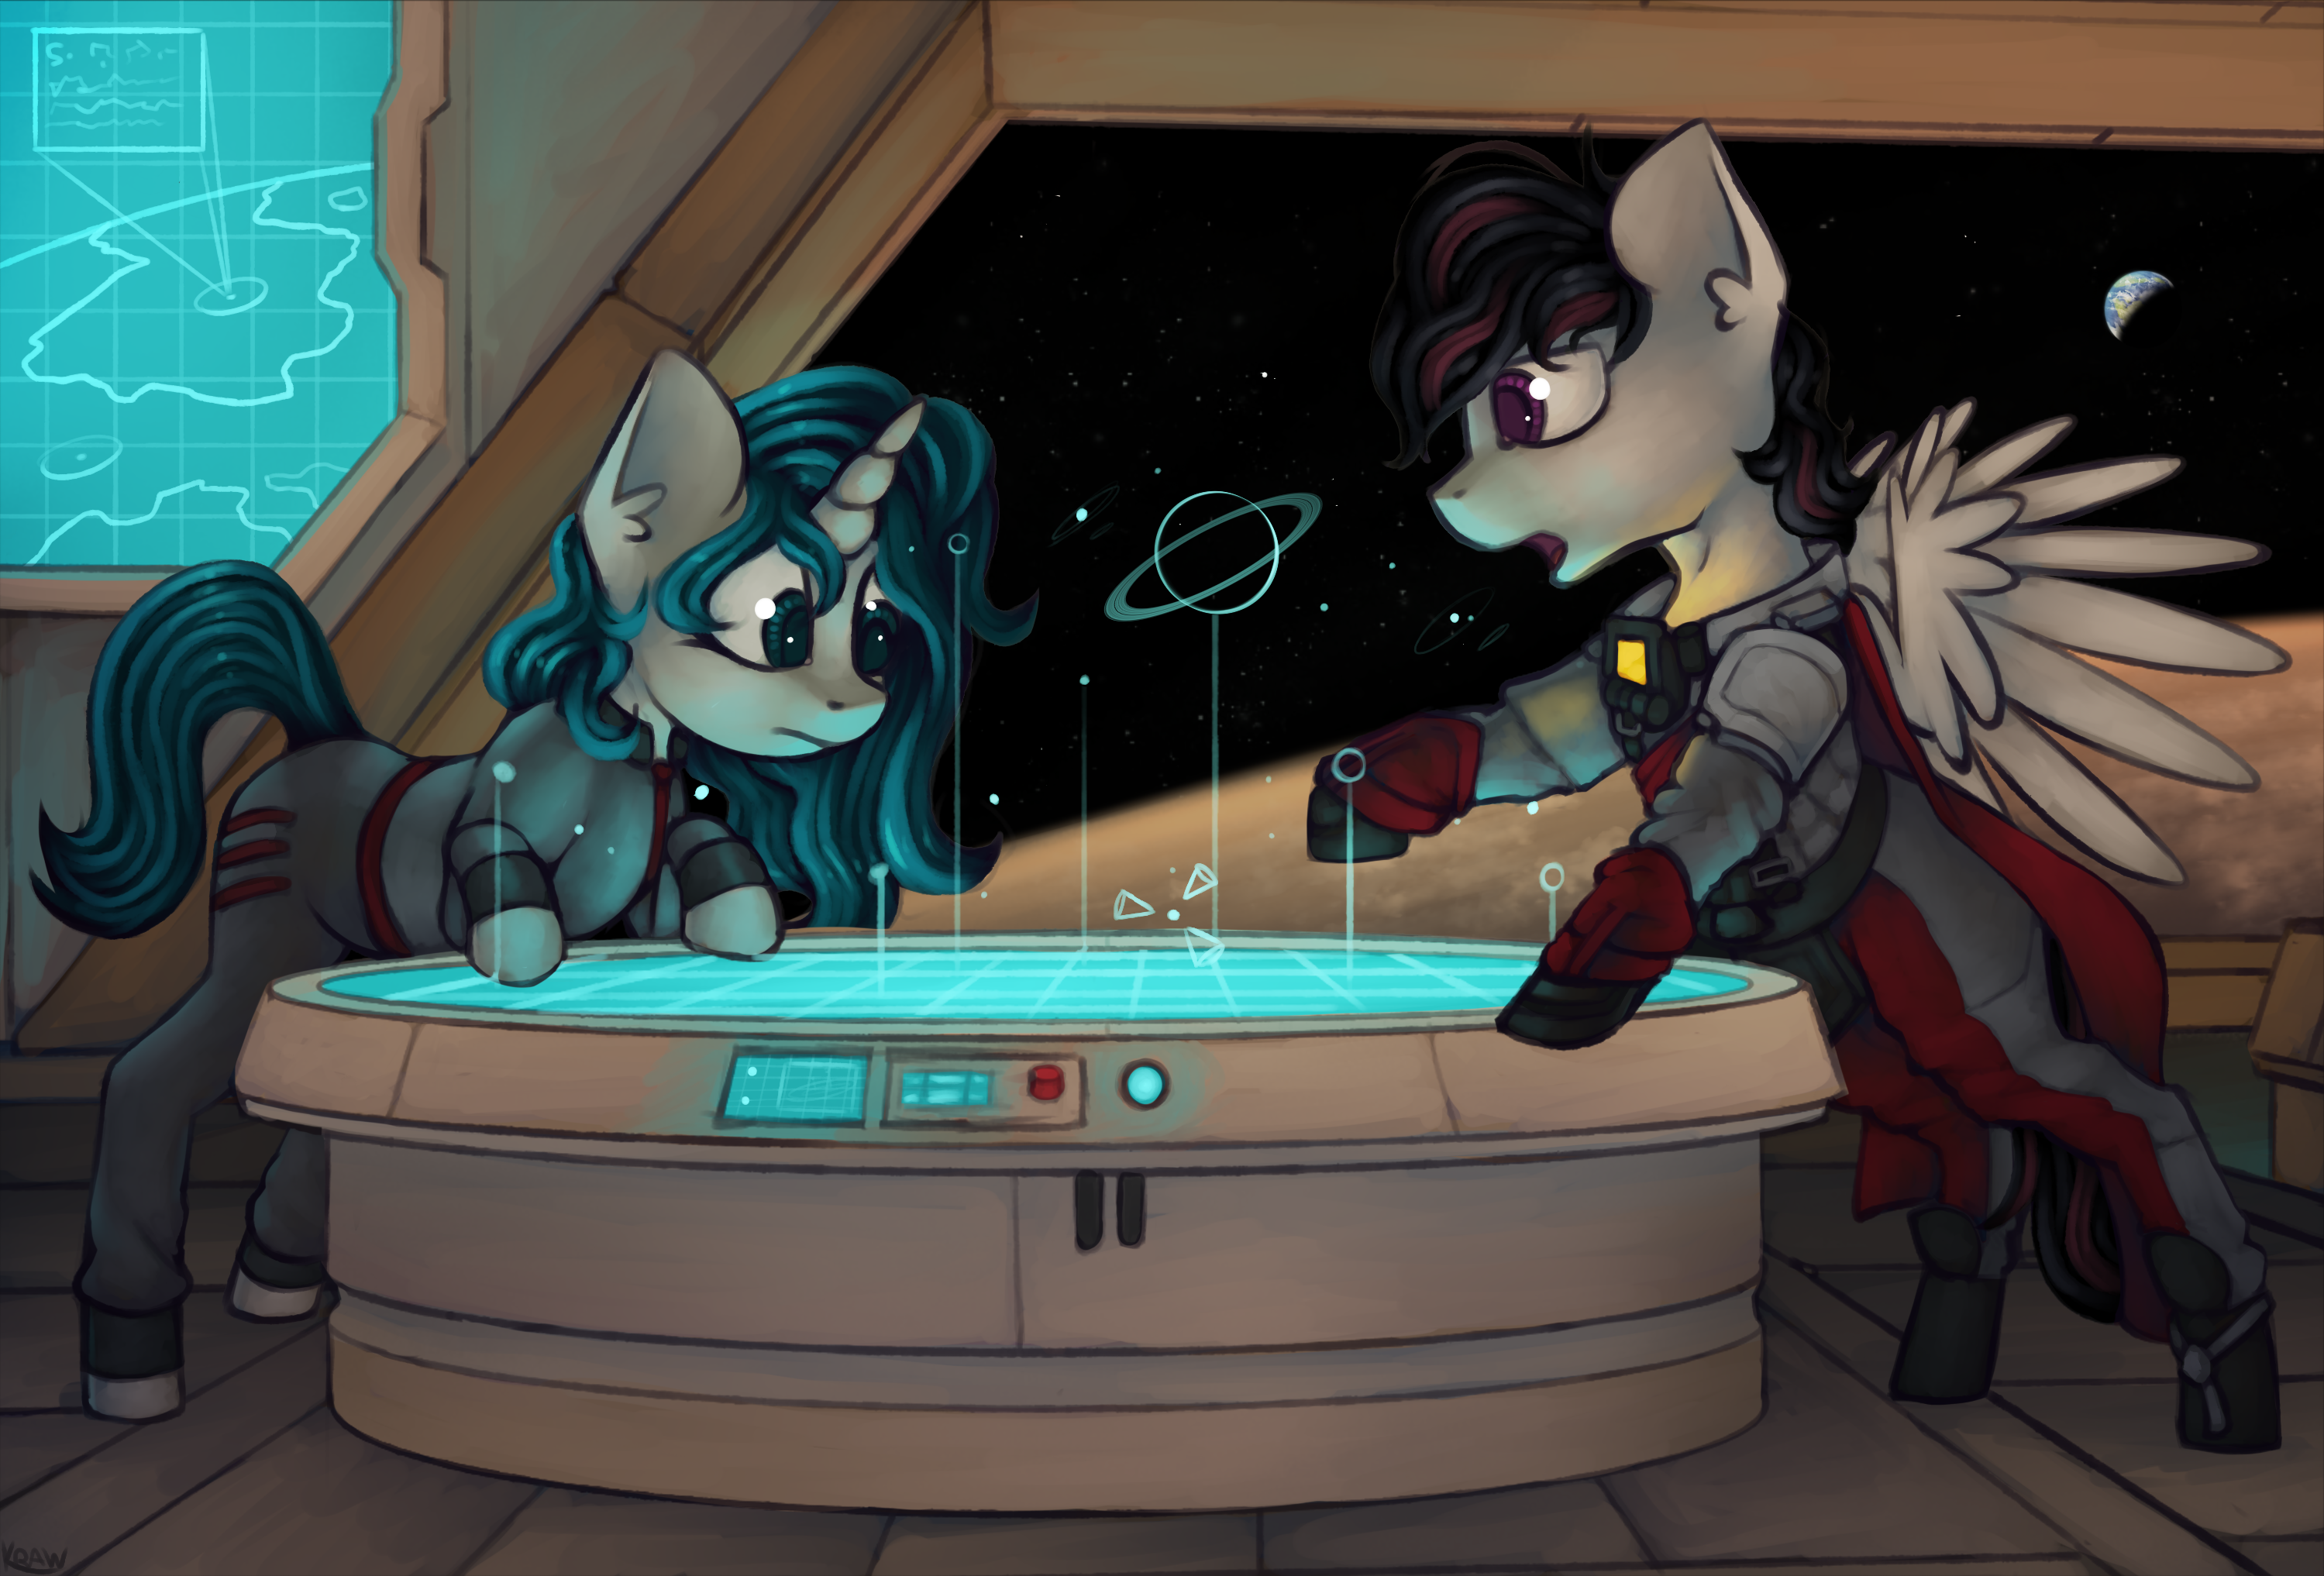 e926 carbon_scratch duo equine fan_character female horse male mammal marsminer my_little_pony pony space